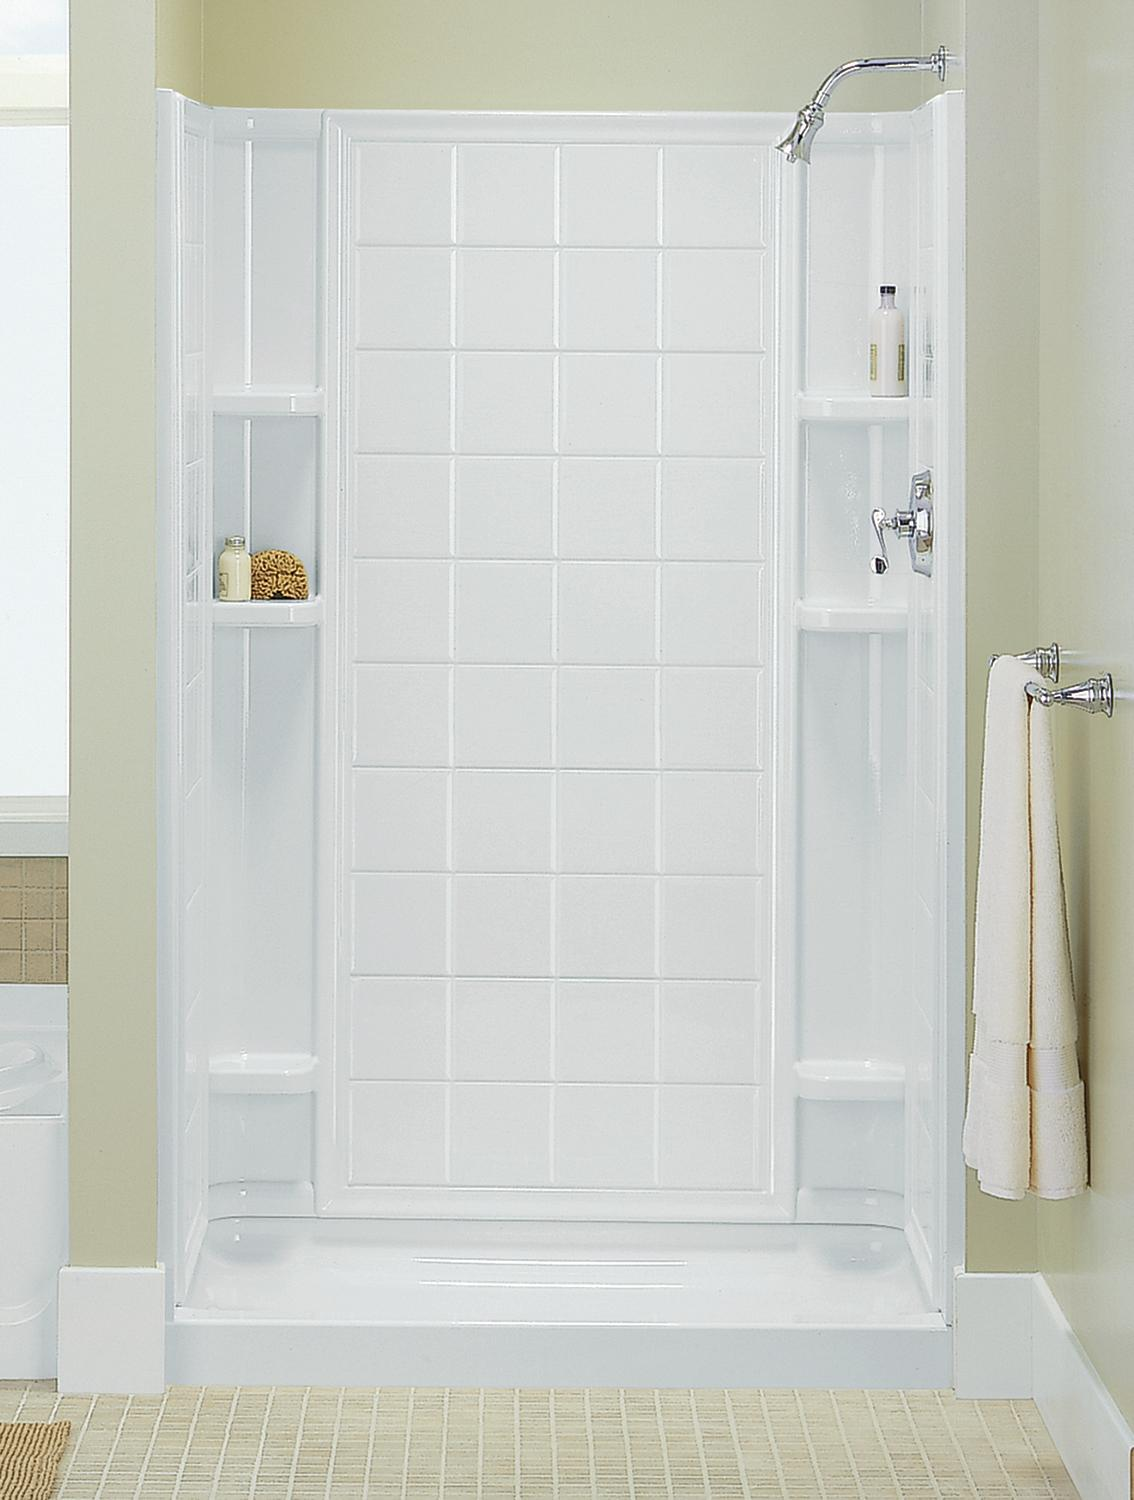 Sterling 72100100 96 ensemble 36 series 7210 tile alcove for The sterling